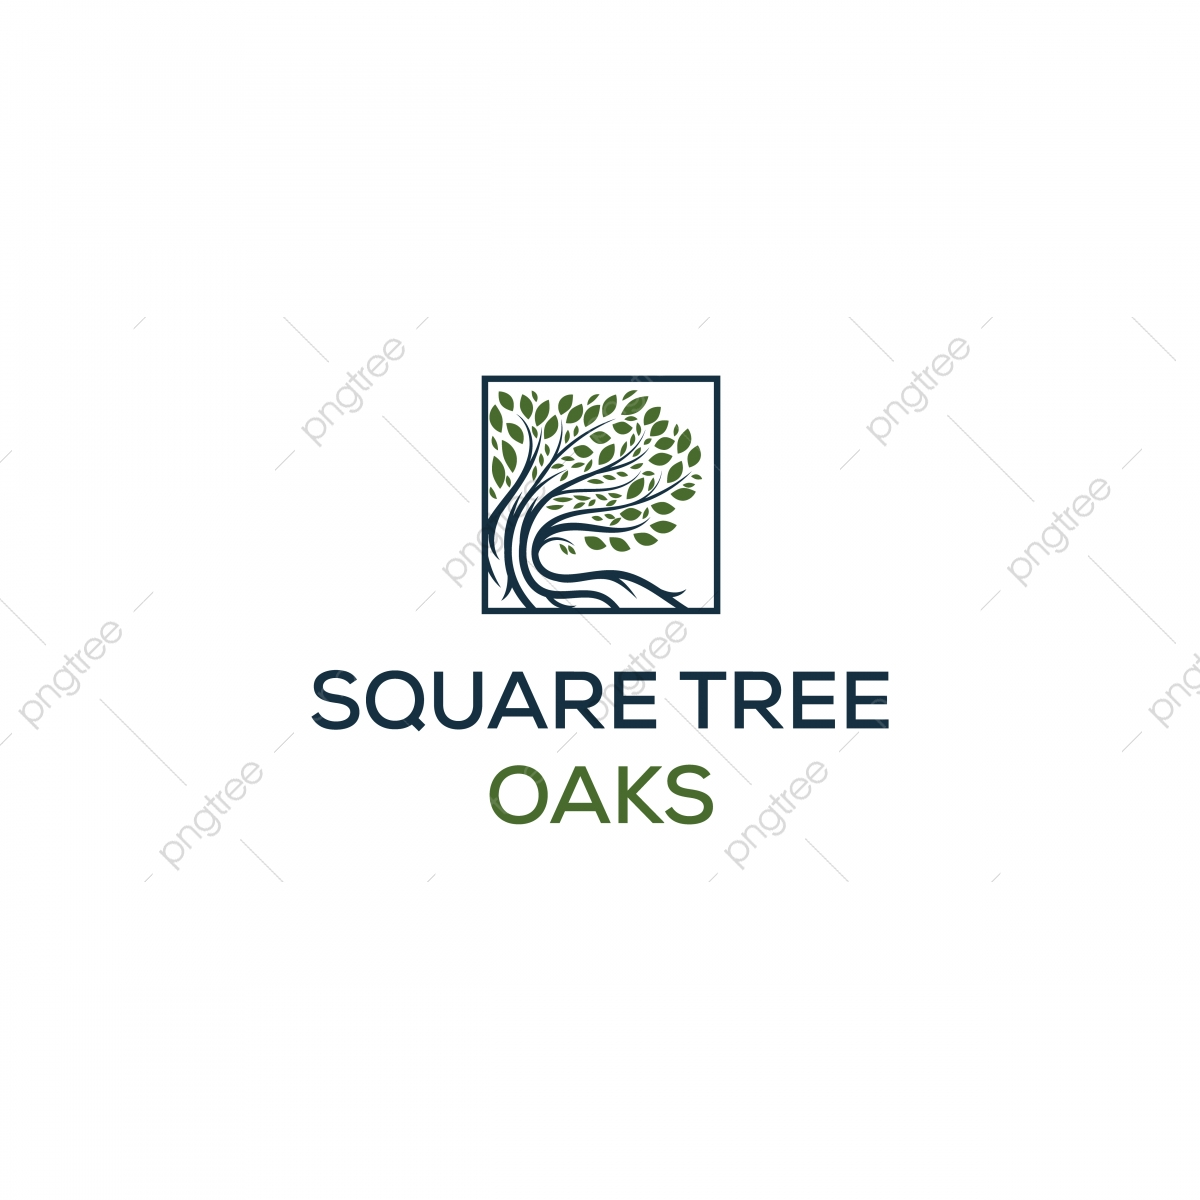 Oaks Logo Designs In Square Symbol, Abstract, Ancient, Art PNG and